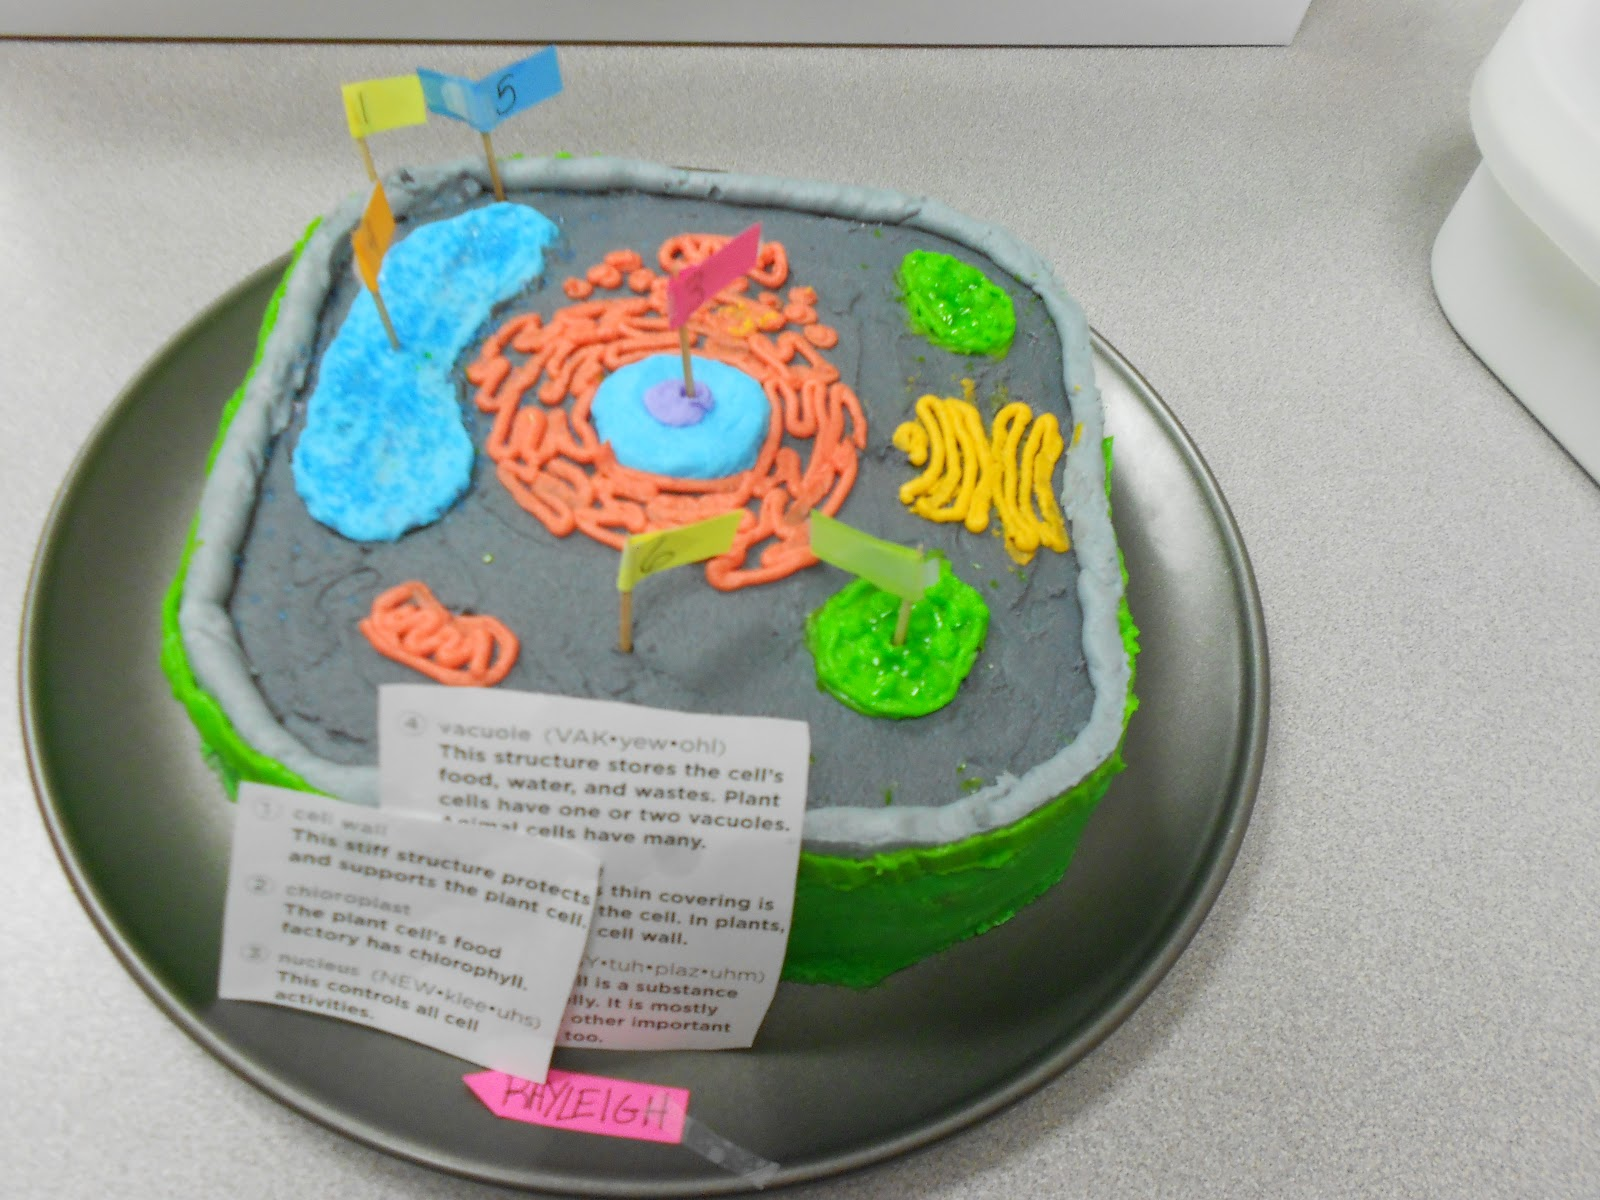 Plant Cell Styrofoam Model http://mcdonaldgrade4.blogspot.com/2012/08/make-cell-model-project.html